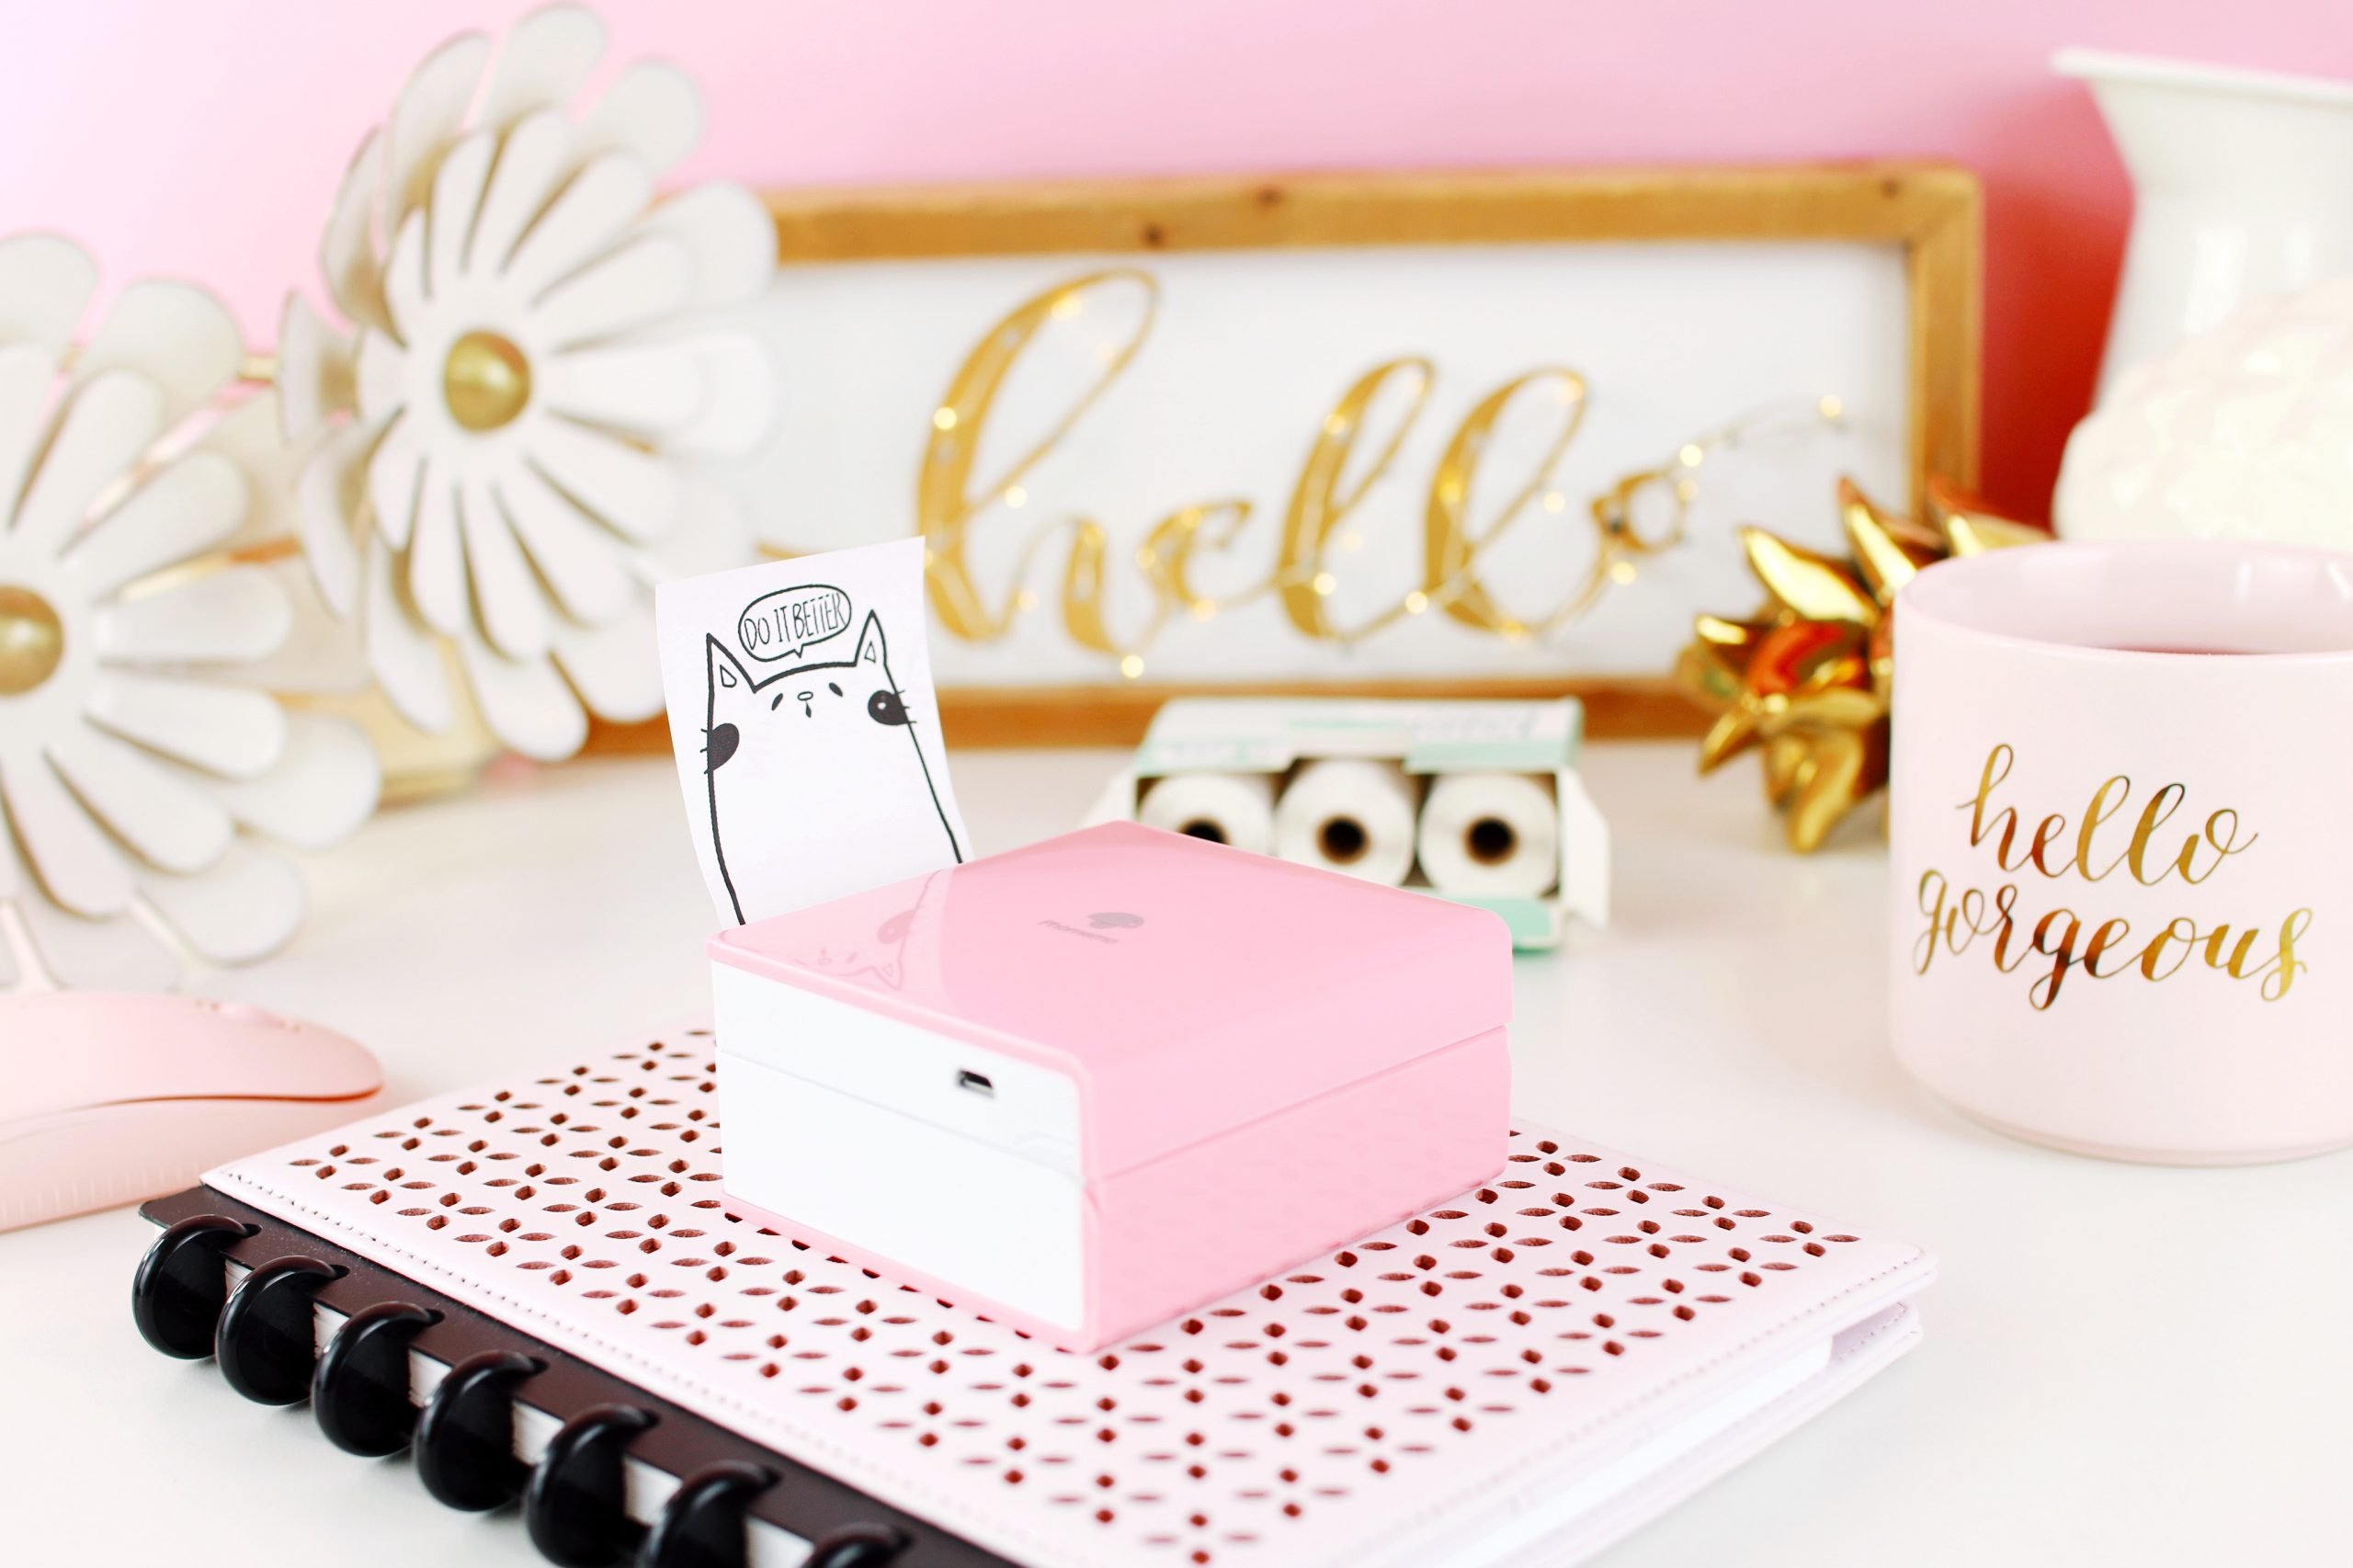 Best Mini Sticker Printer: Phomemo Pocket Printer Review